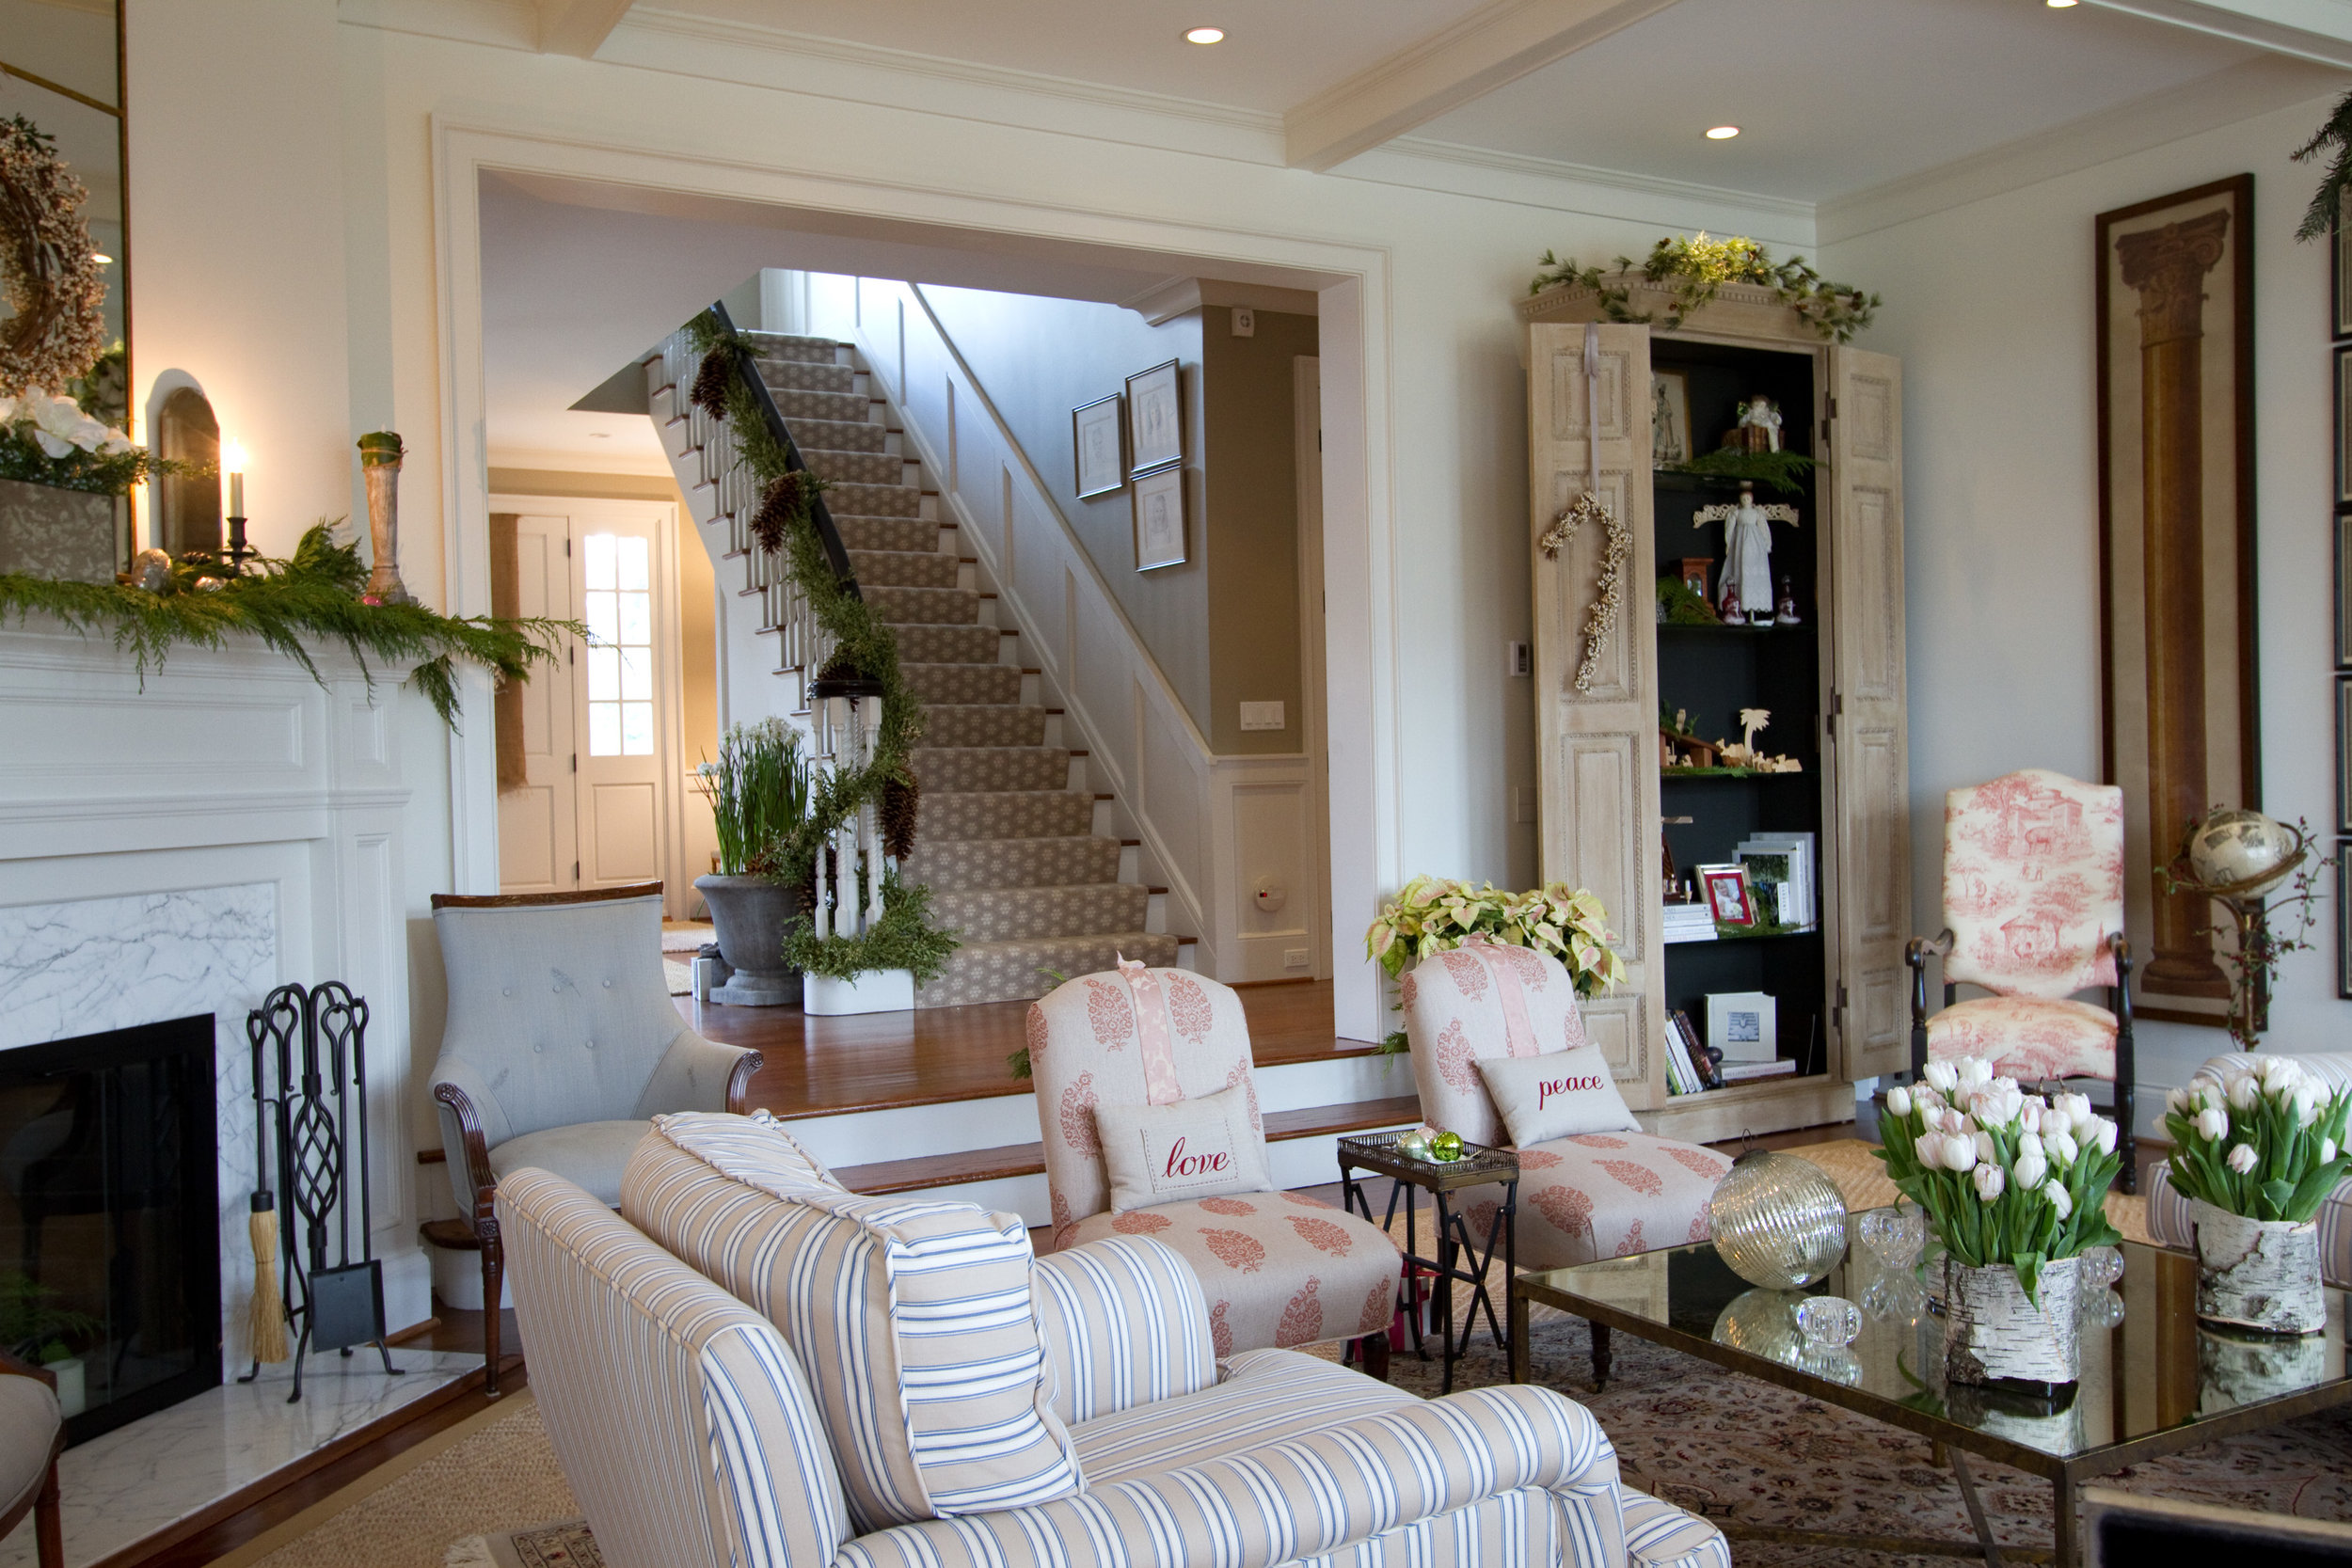 traditional living room interior with fireplace and staircase